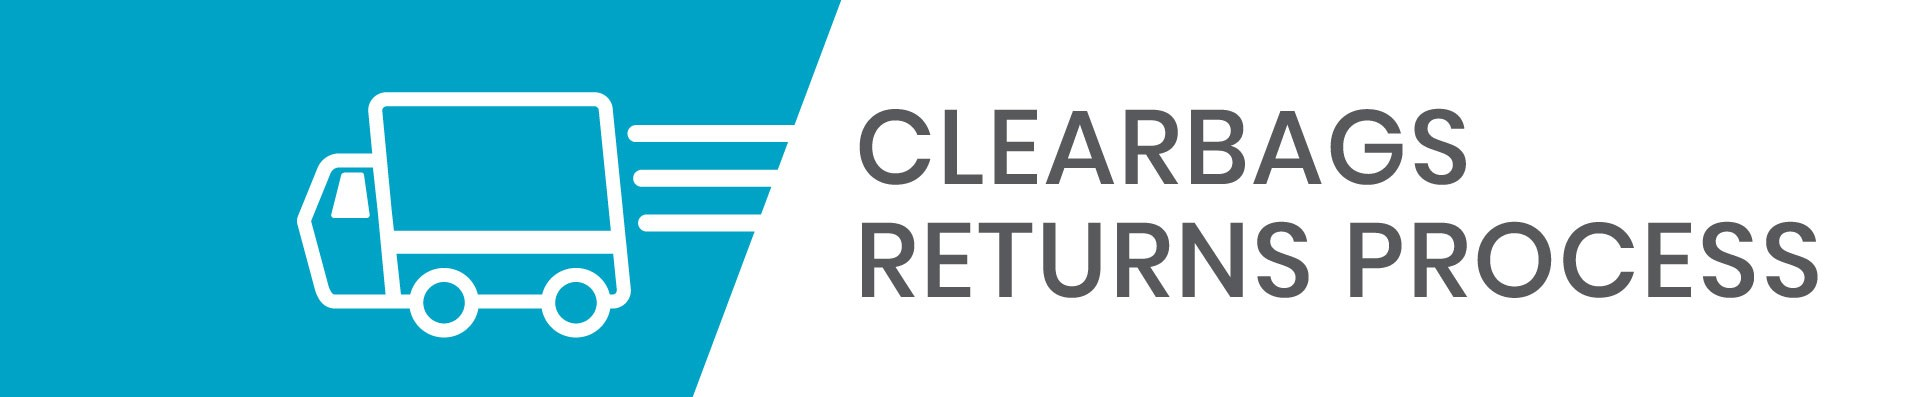 ClearBags Returns Process